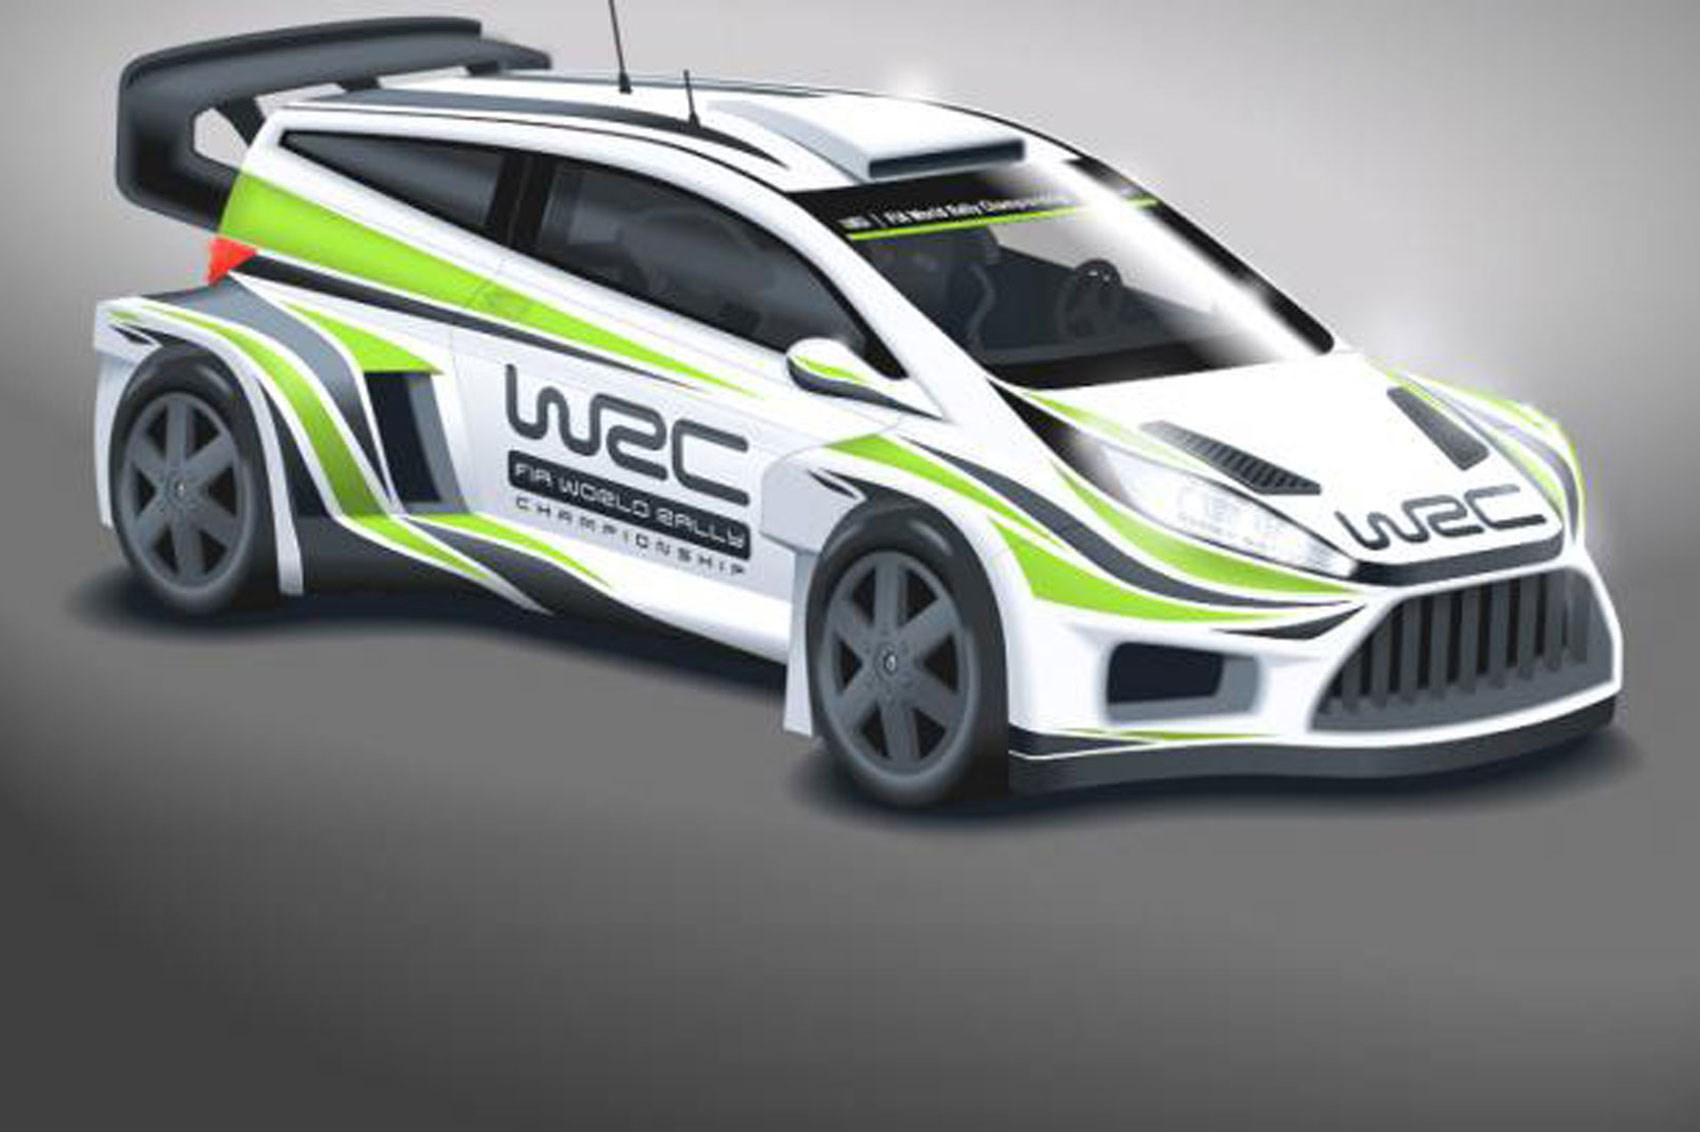 Ultrablogus  Stunning Wild New Look For Wrc Cars In  By Car Magazine With Fetching Wrc Cars Will Get Wider Bodies Bigger Wings And More Power For  With Delightful Maybach Car Interior Also Complete Auto Interiors In Addition Toyota Highlander Interior Colors And Jeep Wrangler  Interior As Well As Mish Mash Interiors Additionally Mercedes Sprinter Dimensions Interior From Carmagazinecouk With Ultrablogus  Fetching Wild New Look For Wrc Cars In  By Car Magazine With Delightful Wrc Cars Will Get Wider Bodies Bigger Wings And More Power For  And Stunning Maybach Car Interior Also Complete Auto Interiors In Addition Toyota Highlander Interior Colors From Carmagazinecouk